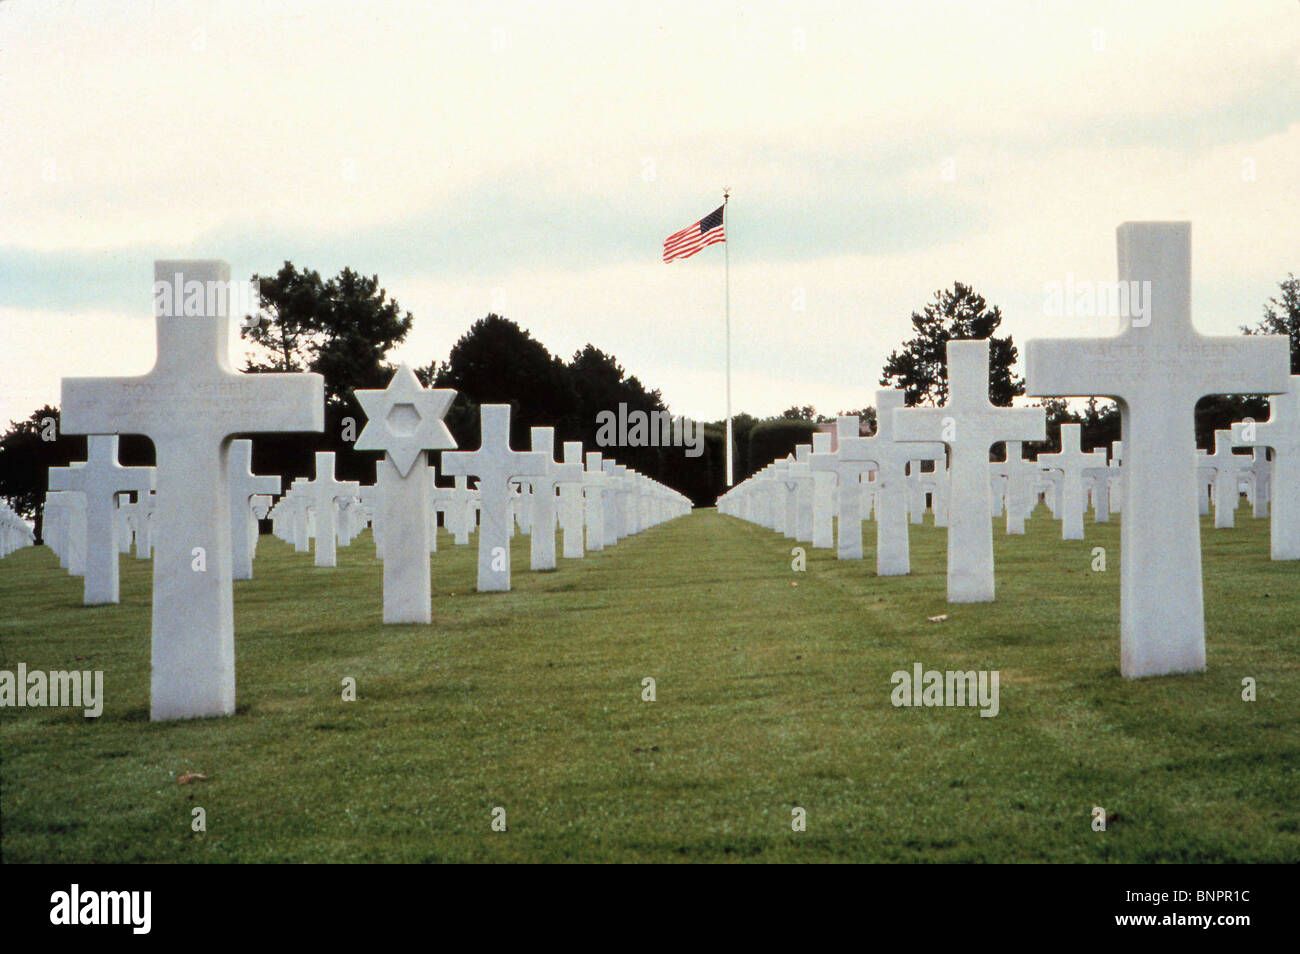 CEMETRY FOR WAR DEAD SAVING PRIVATE RYAN (1998) - Stock Image